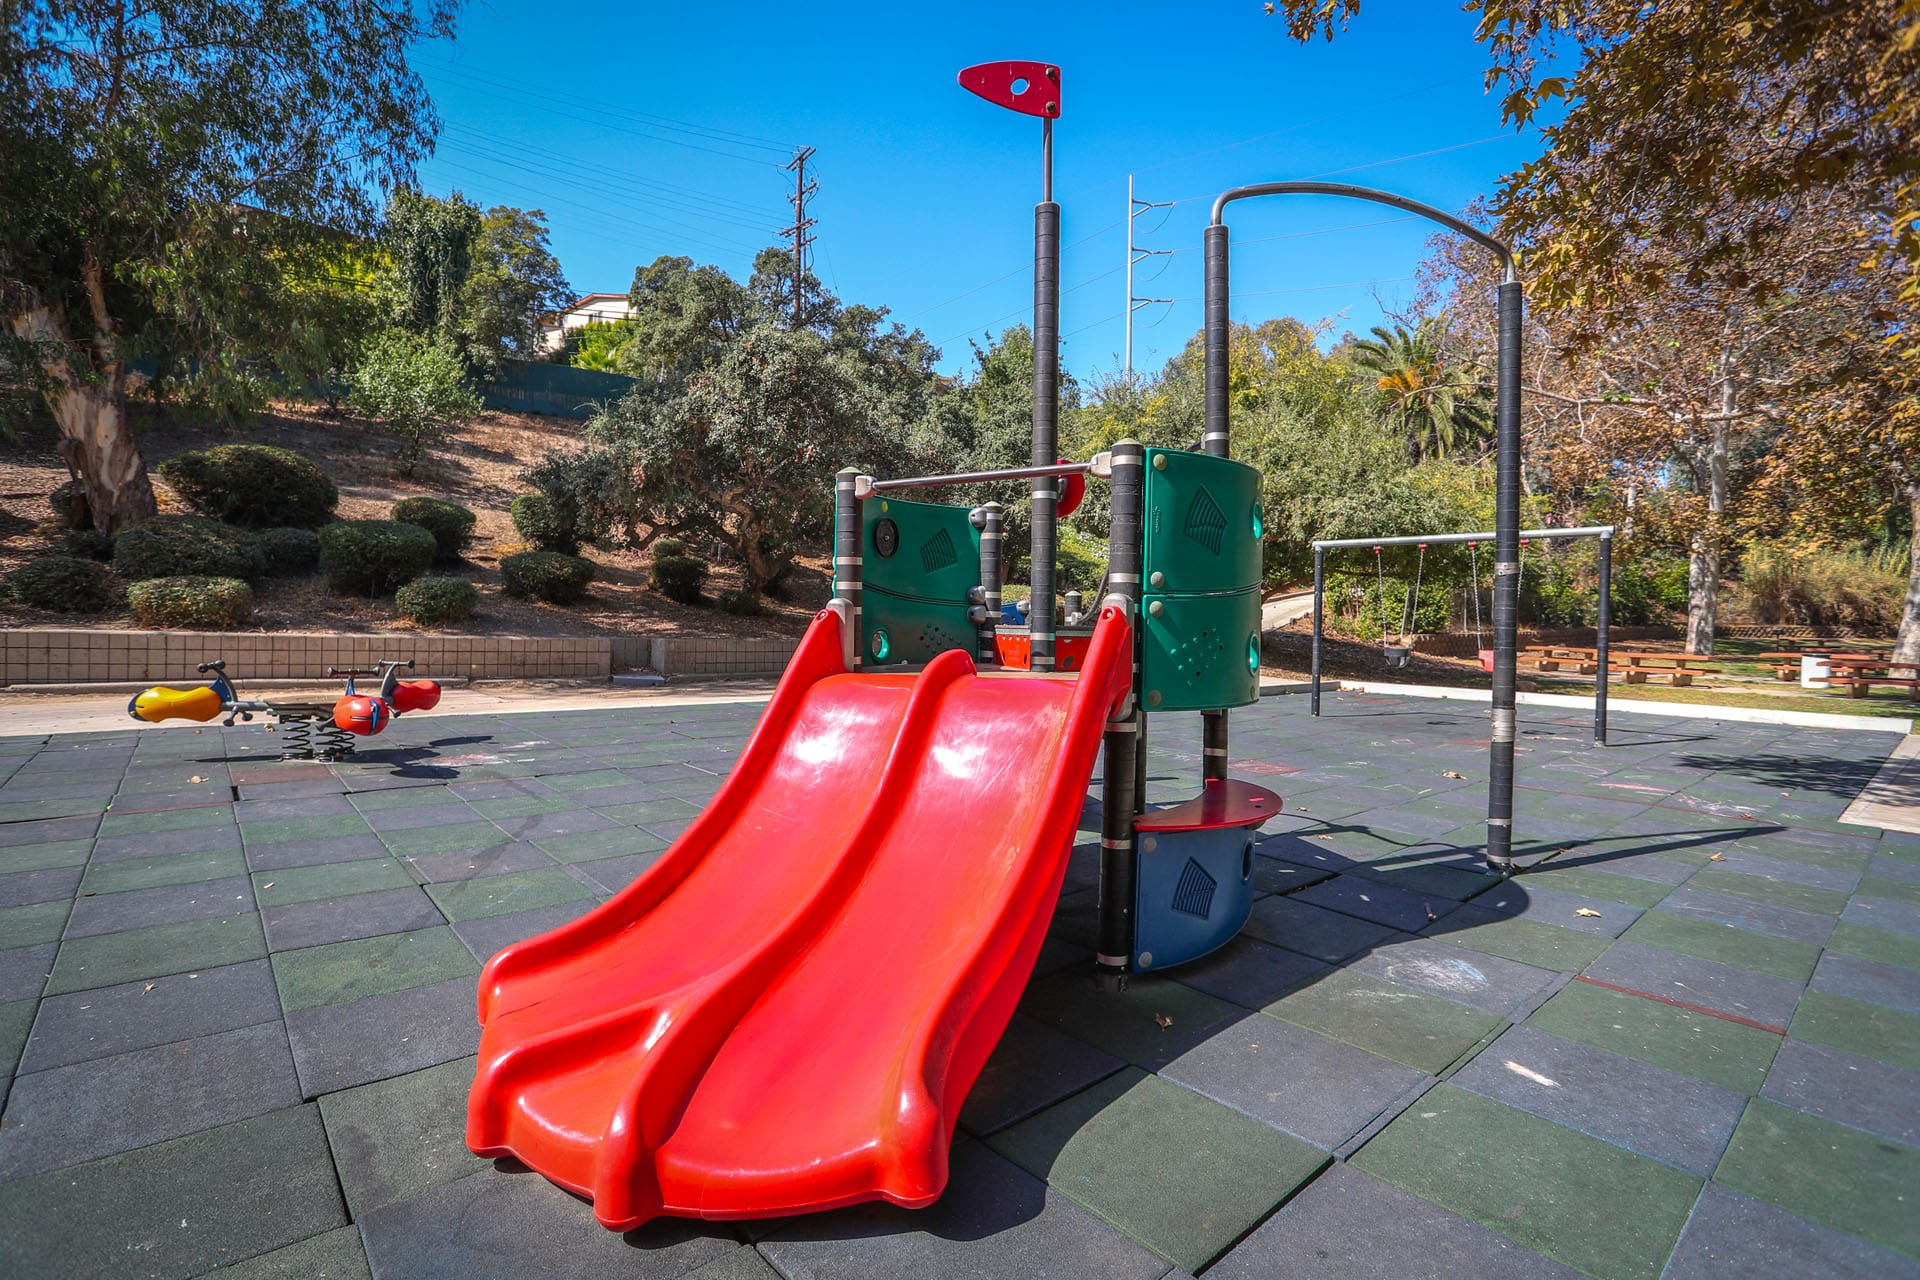 Playground on a rubber tile turf